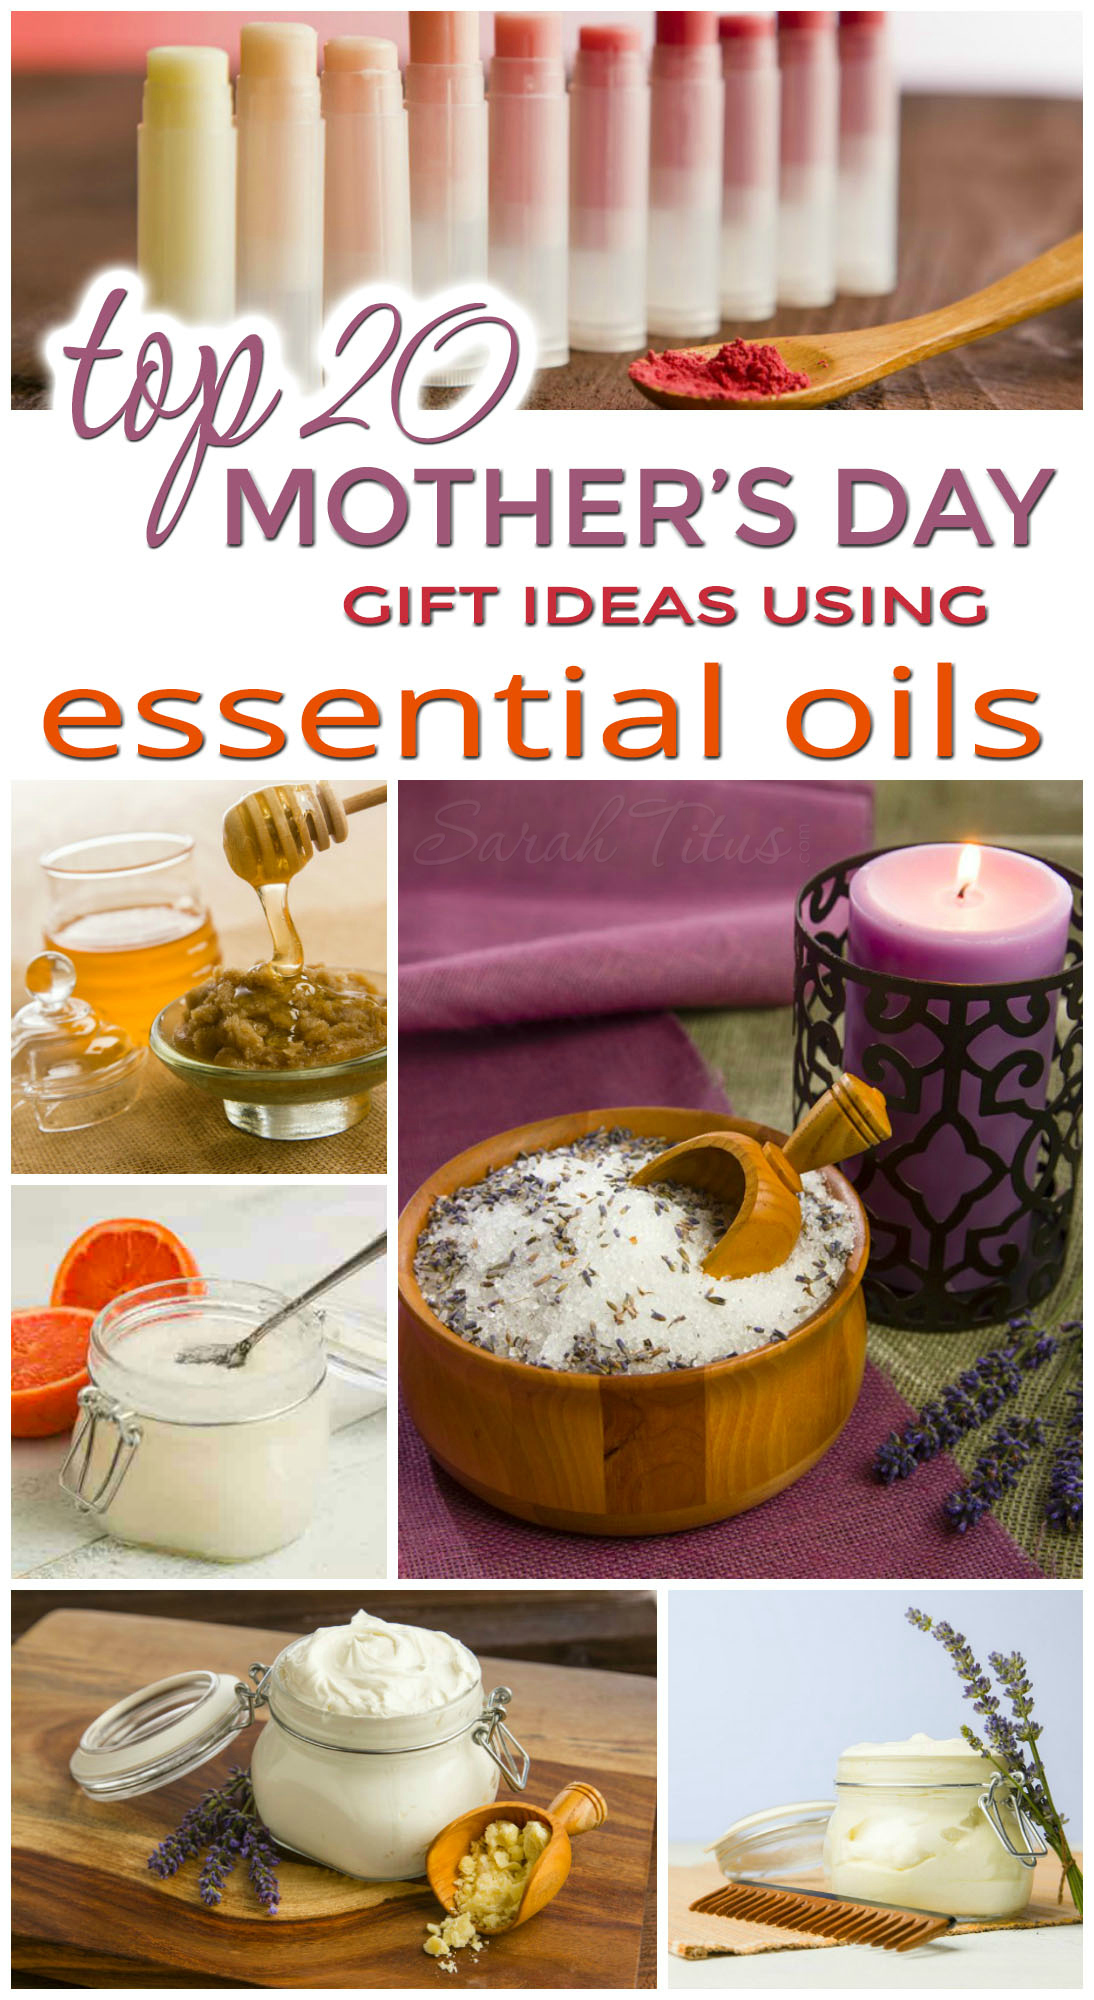 If you're looking to save money and gift a health-conscience gift, these top 20 Mother's Day gift ideas using essential oils are perfect for you!